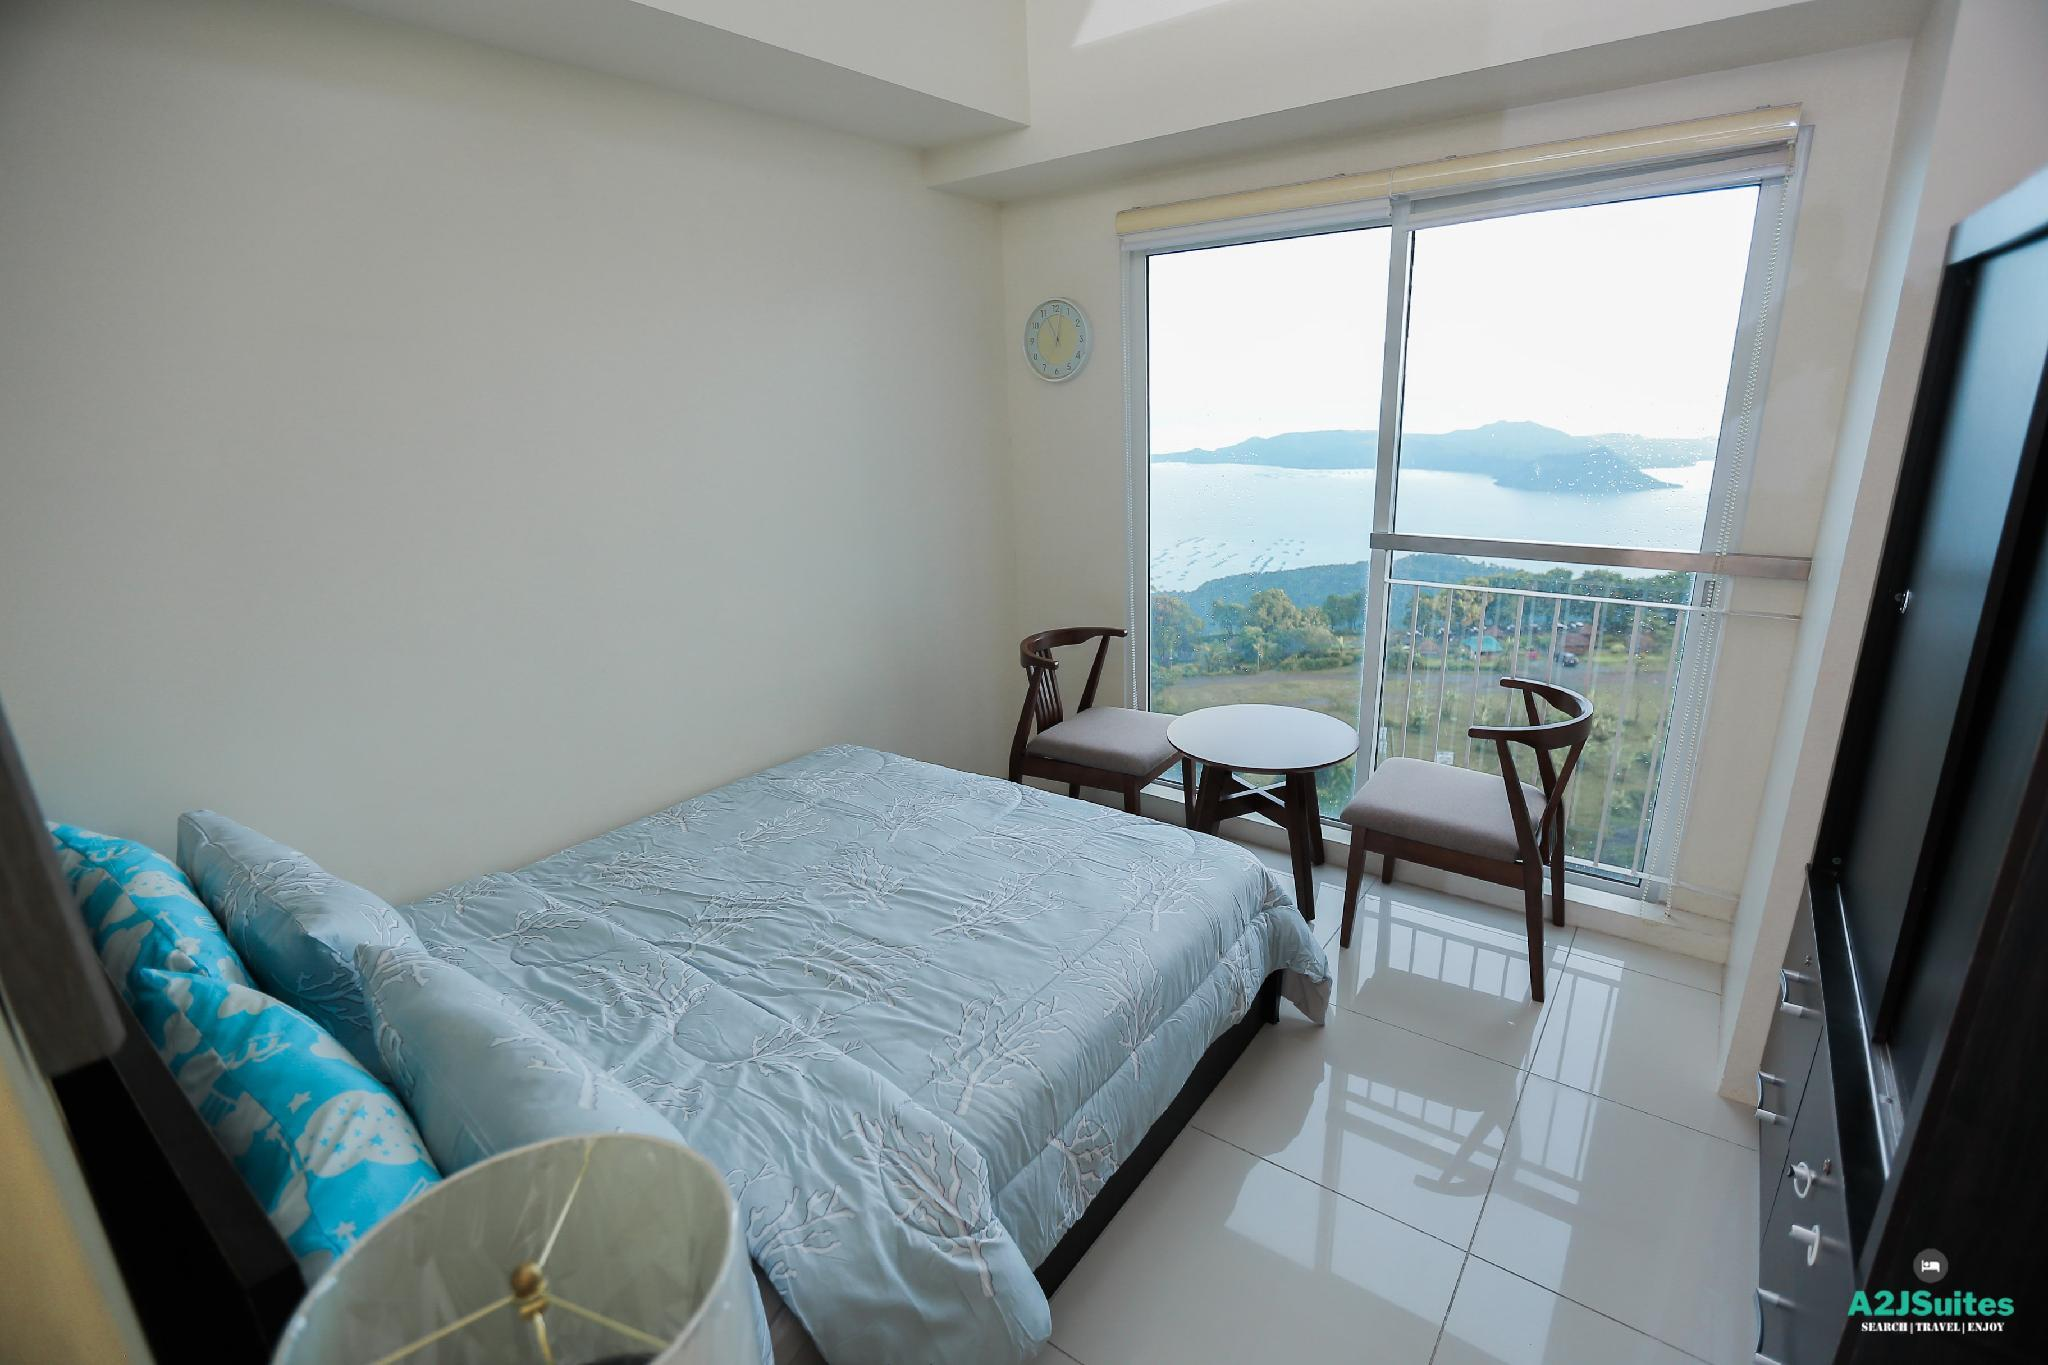 A2JSuites SMARTHOME Taal View Suite Near Skyranch